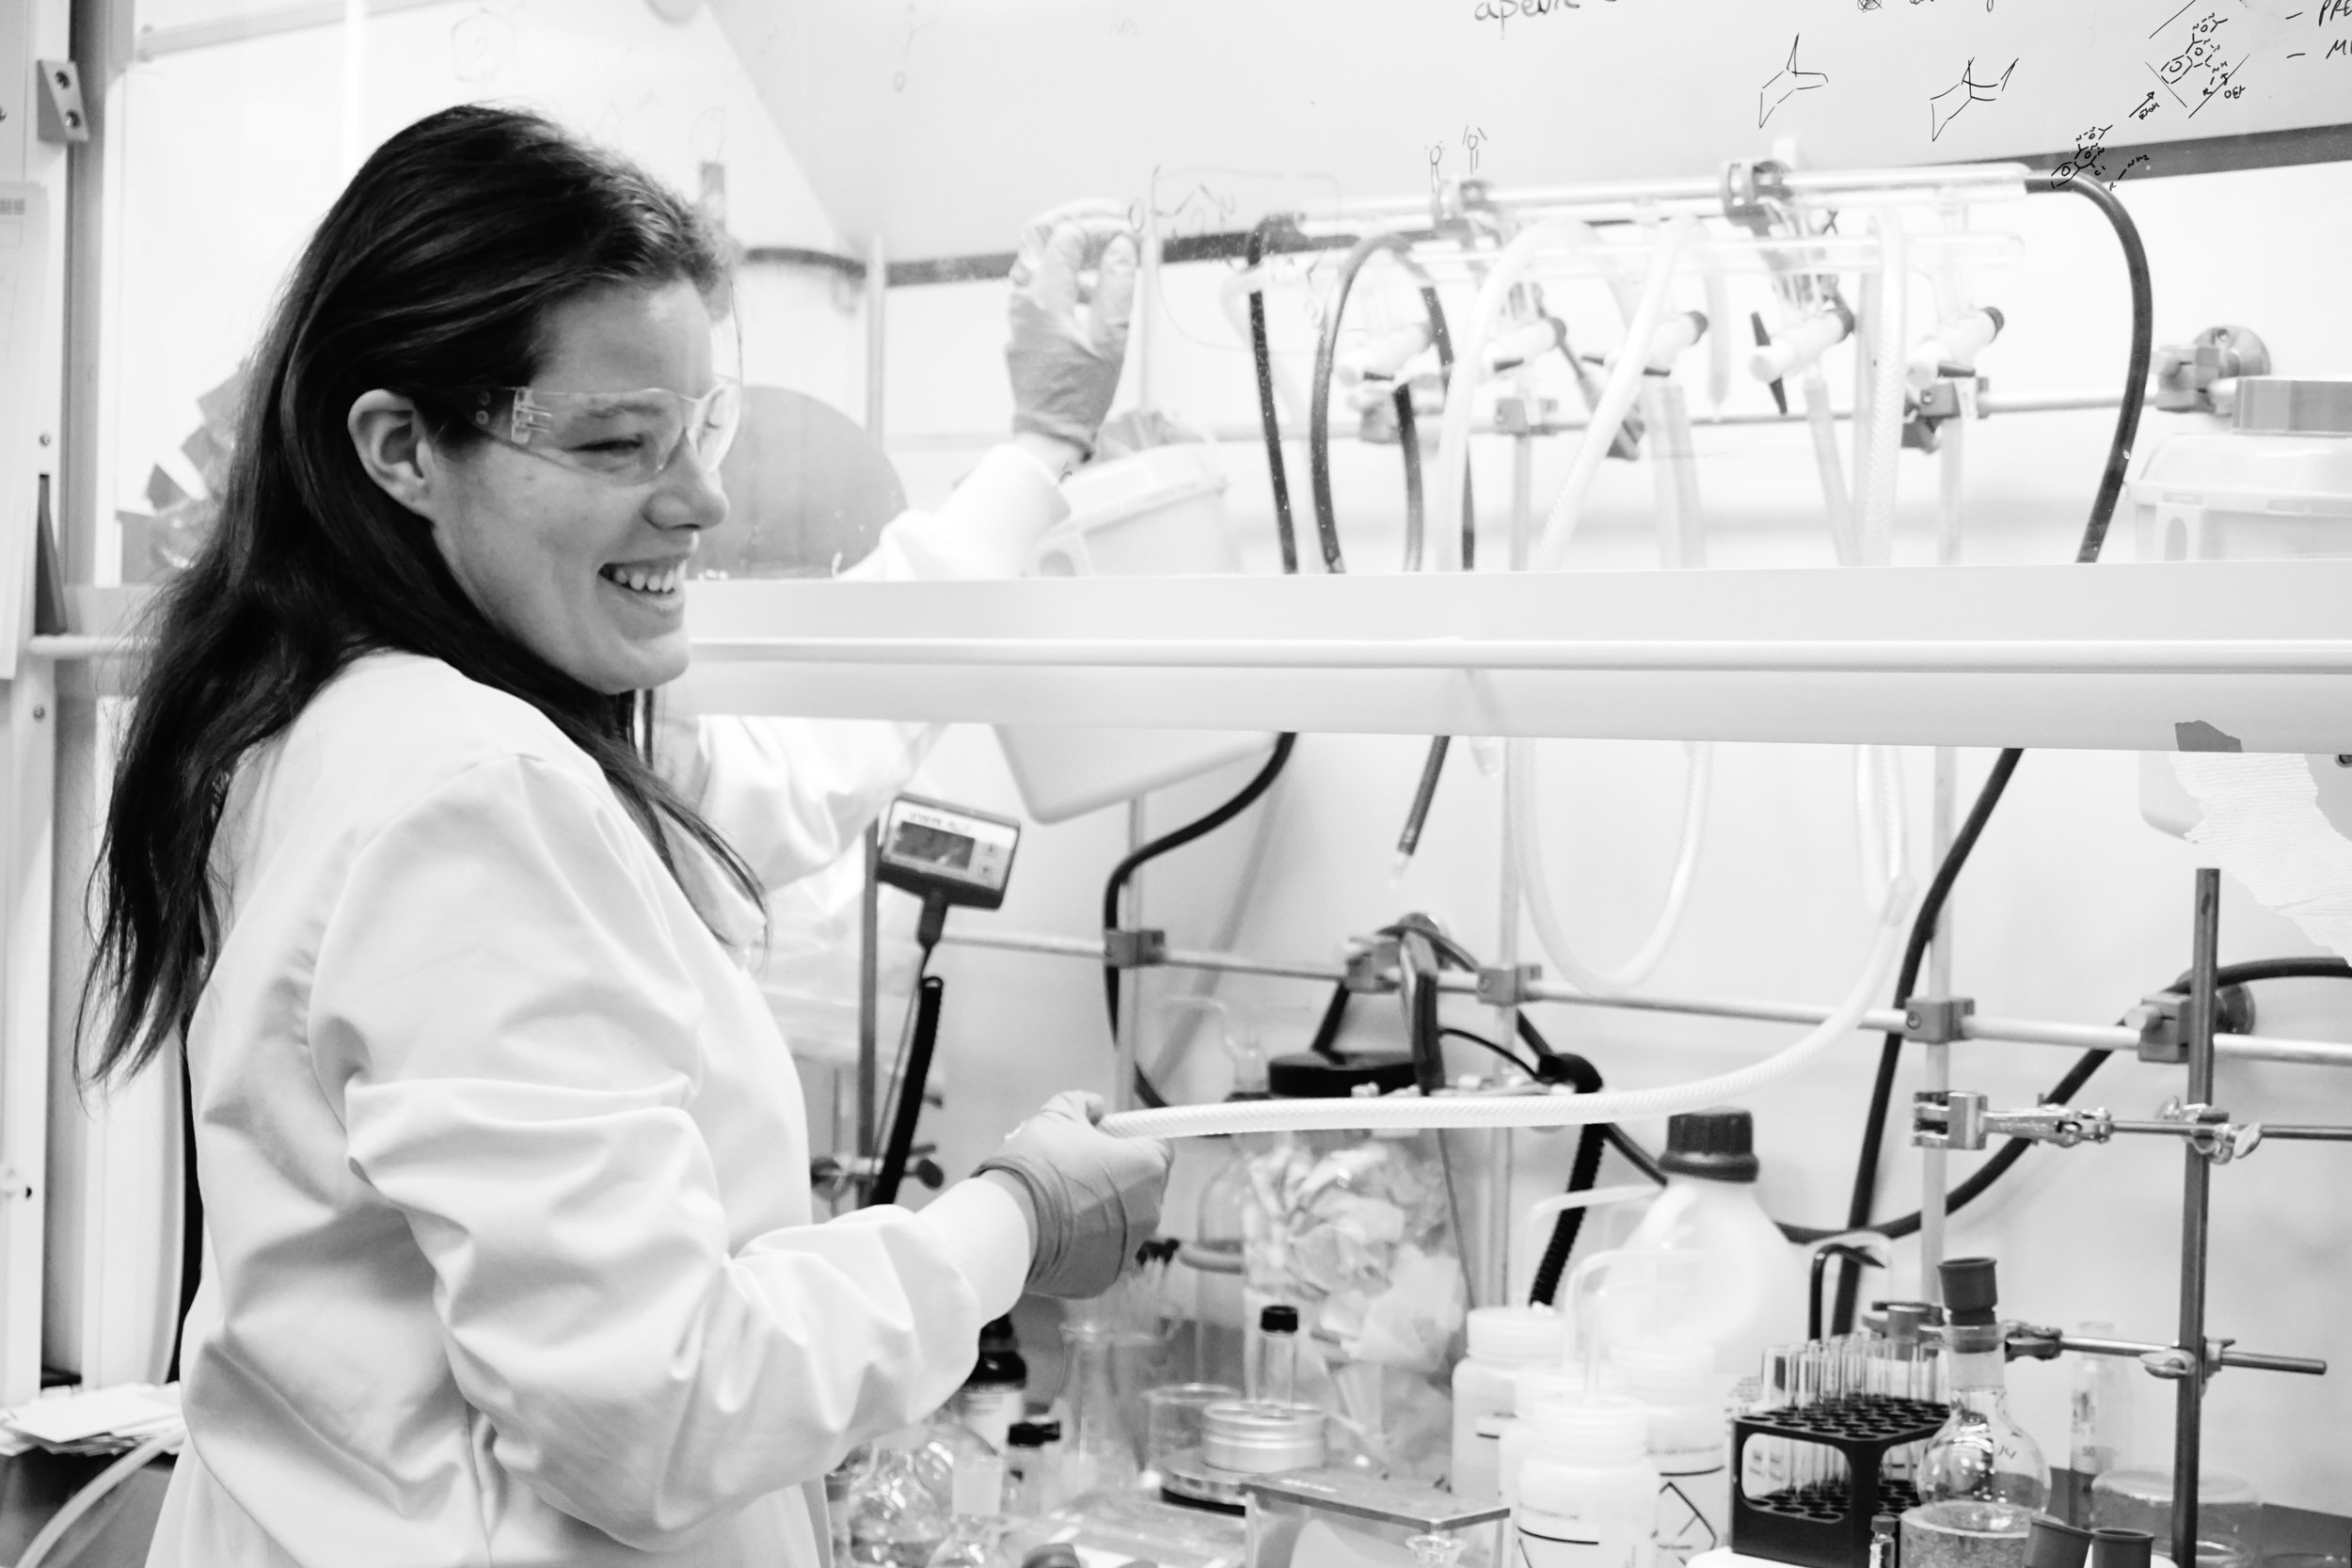 Miranda Wright   Miranda completed her DPhil in August 2018 on the design of covalent inhibitors of KDM5. She recently began working at Vertex Pharmaceuticals.